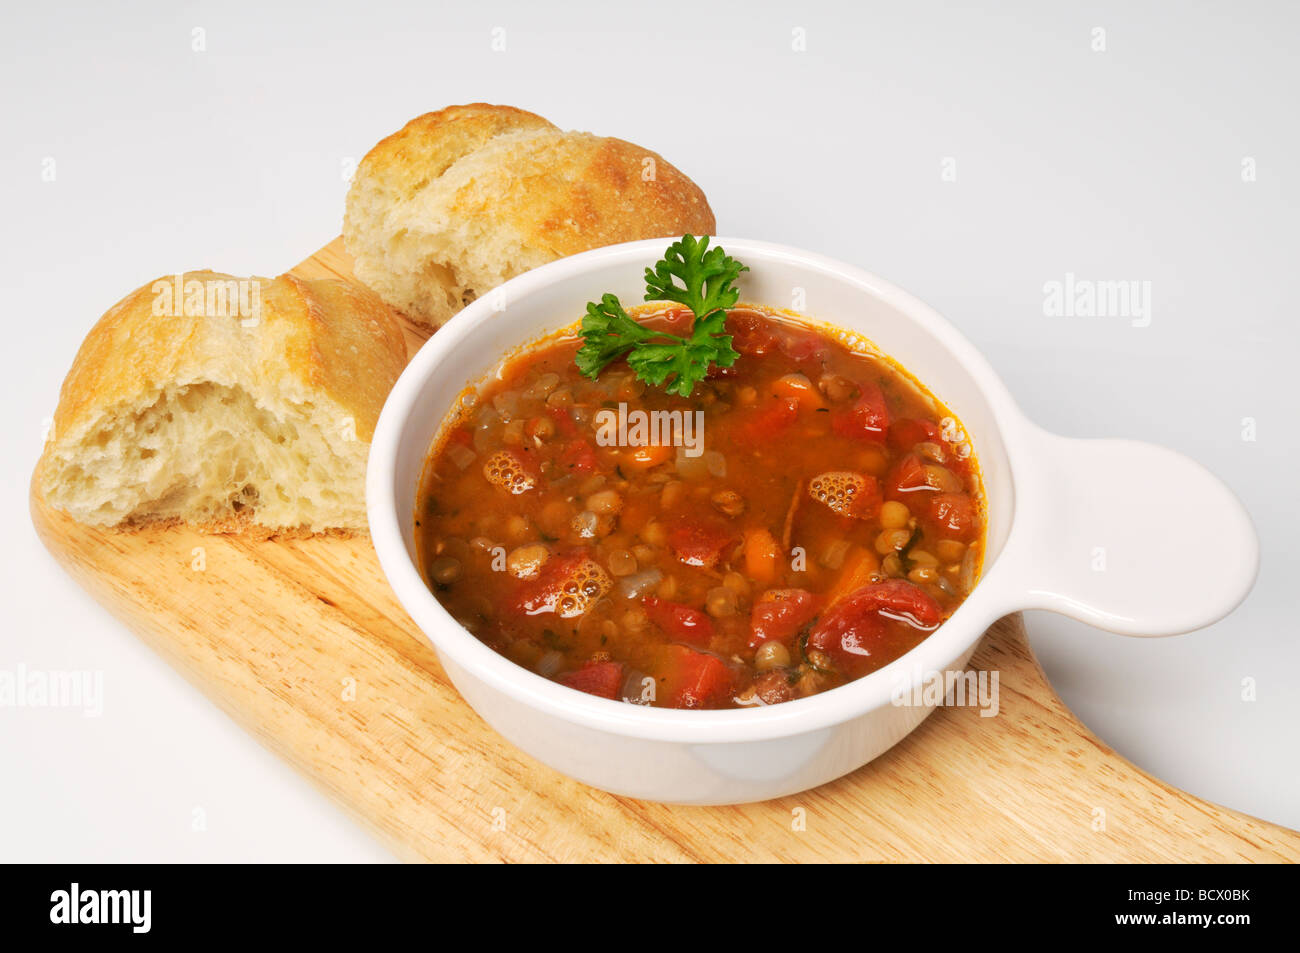 Bowl of lentil soup with roll Stock Photo